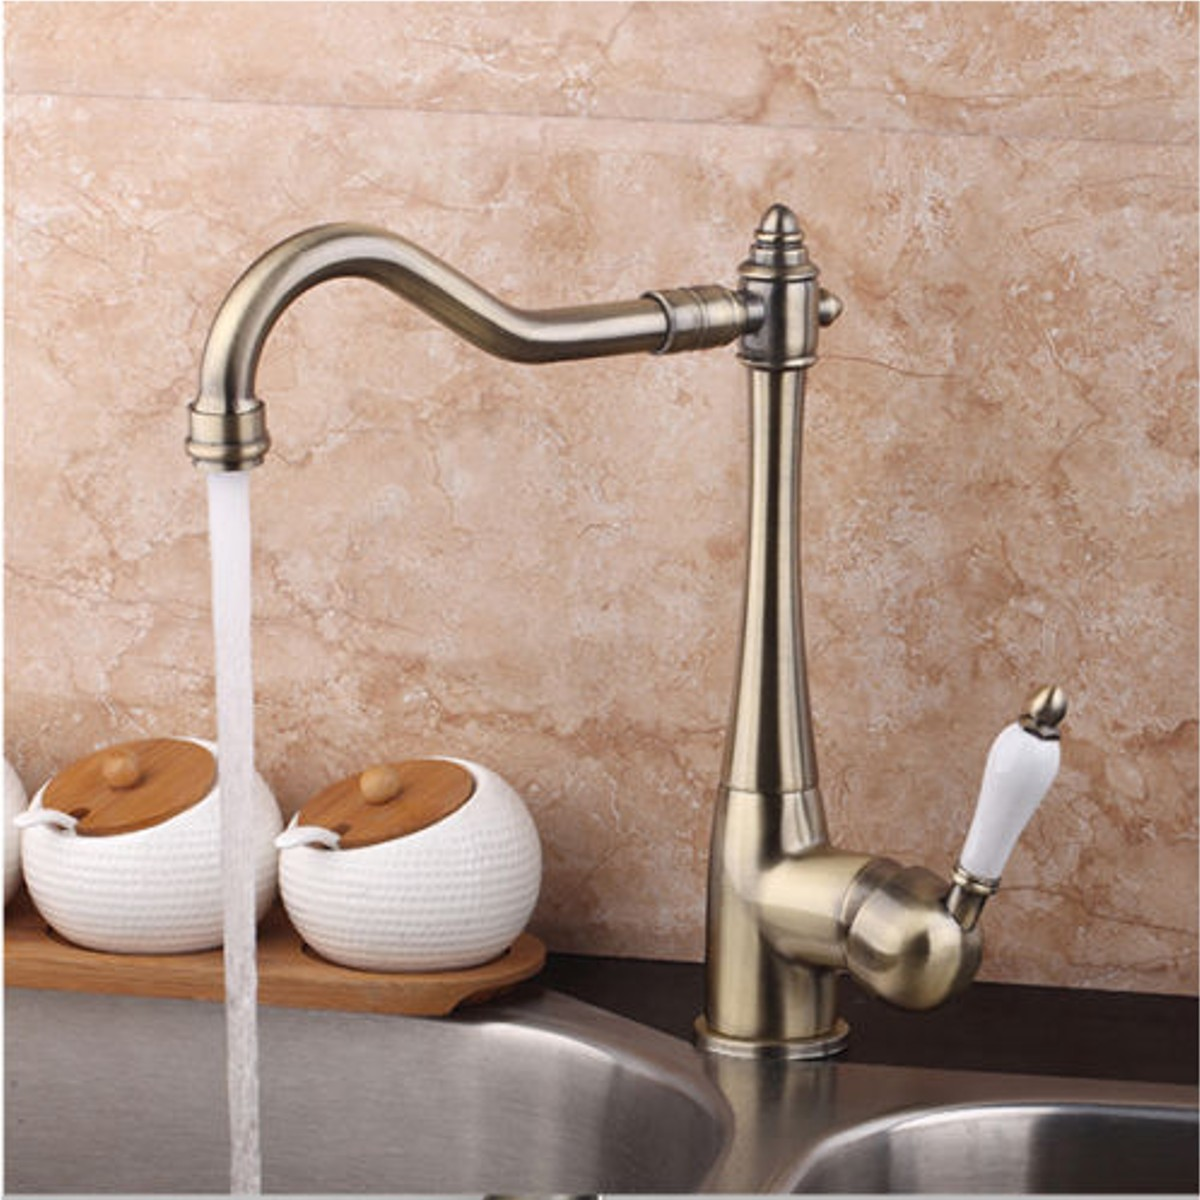 Xueqin Deck Mounted Antique Copper Bathroom Basin Faucet Classic Single Handle Mixer Tap Bathroom Sink Faucet Hot and Cold Water недорго, оригинальная цена